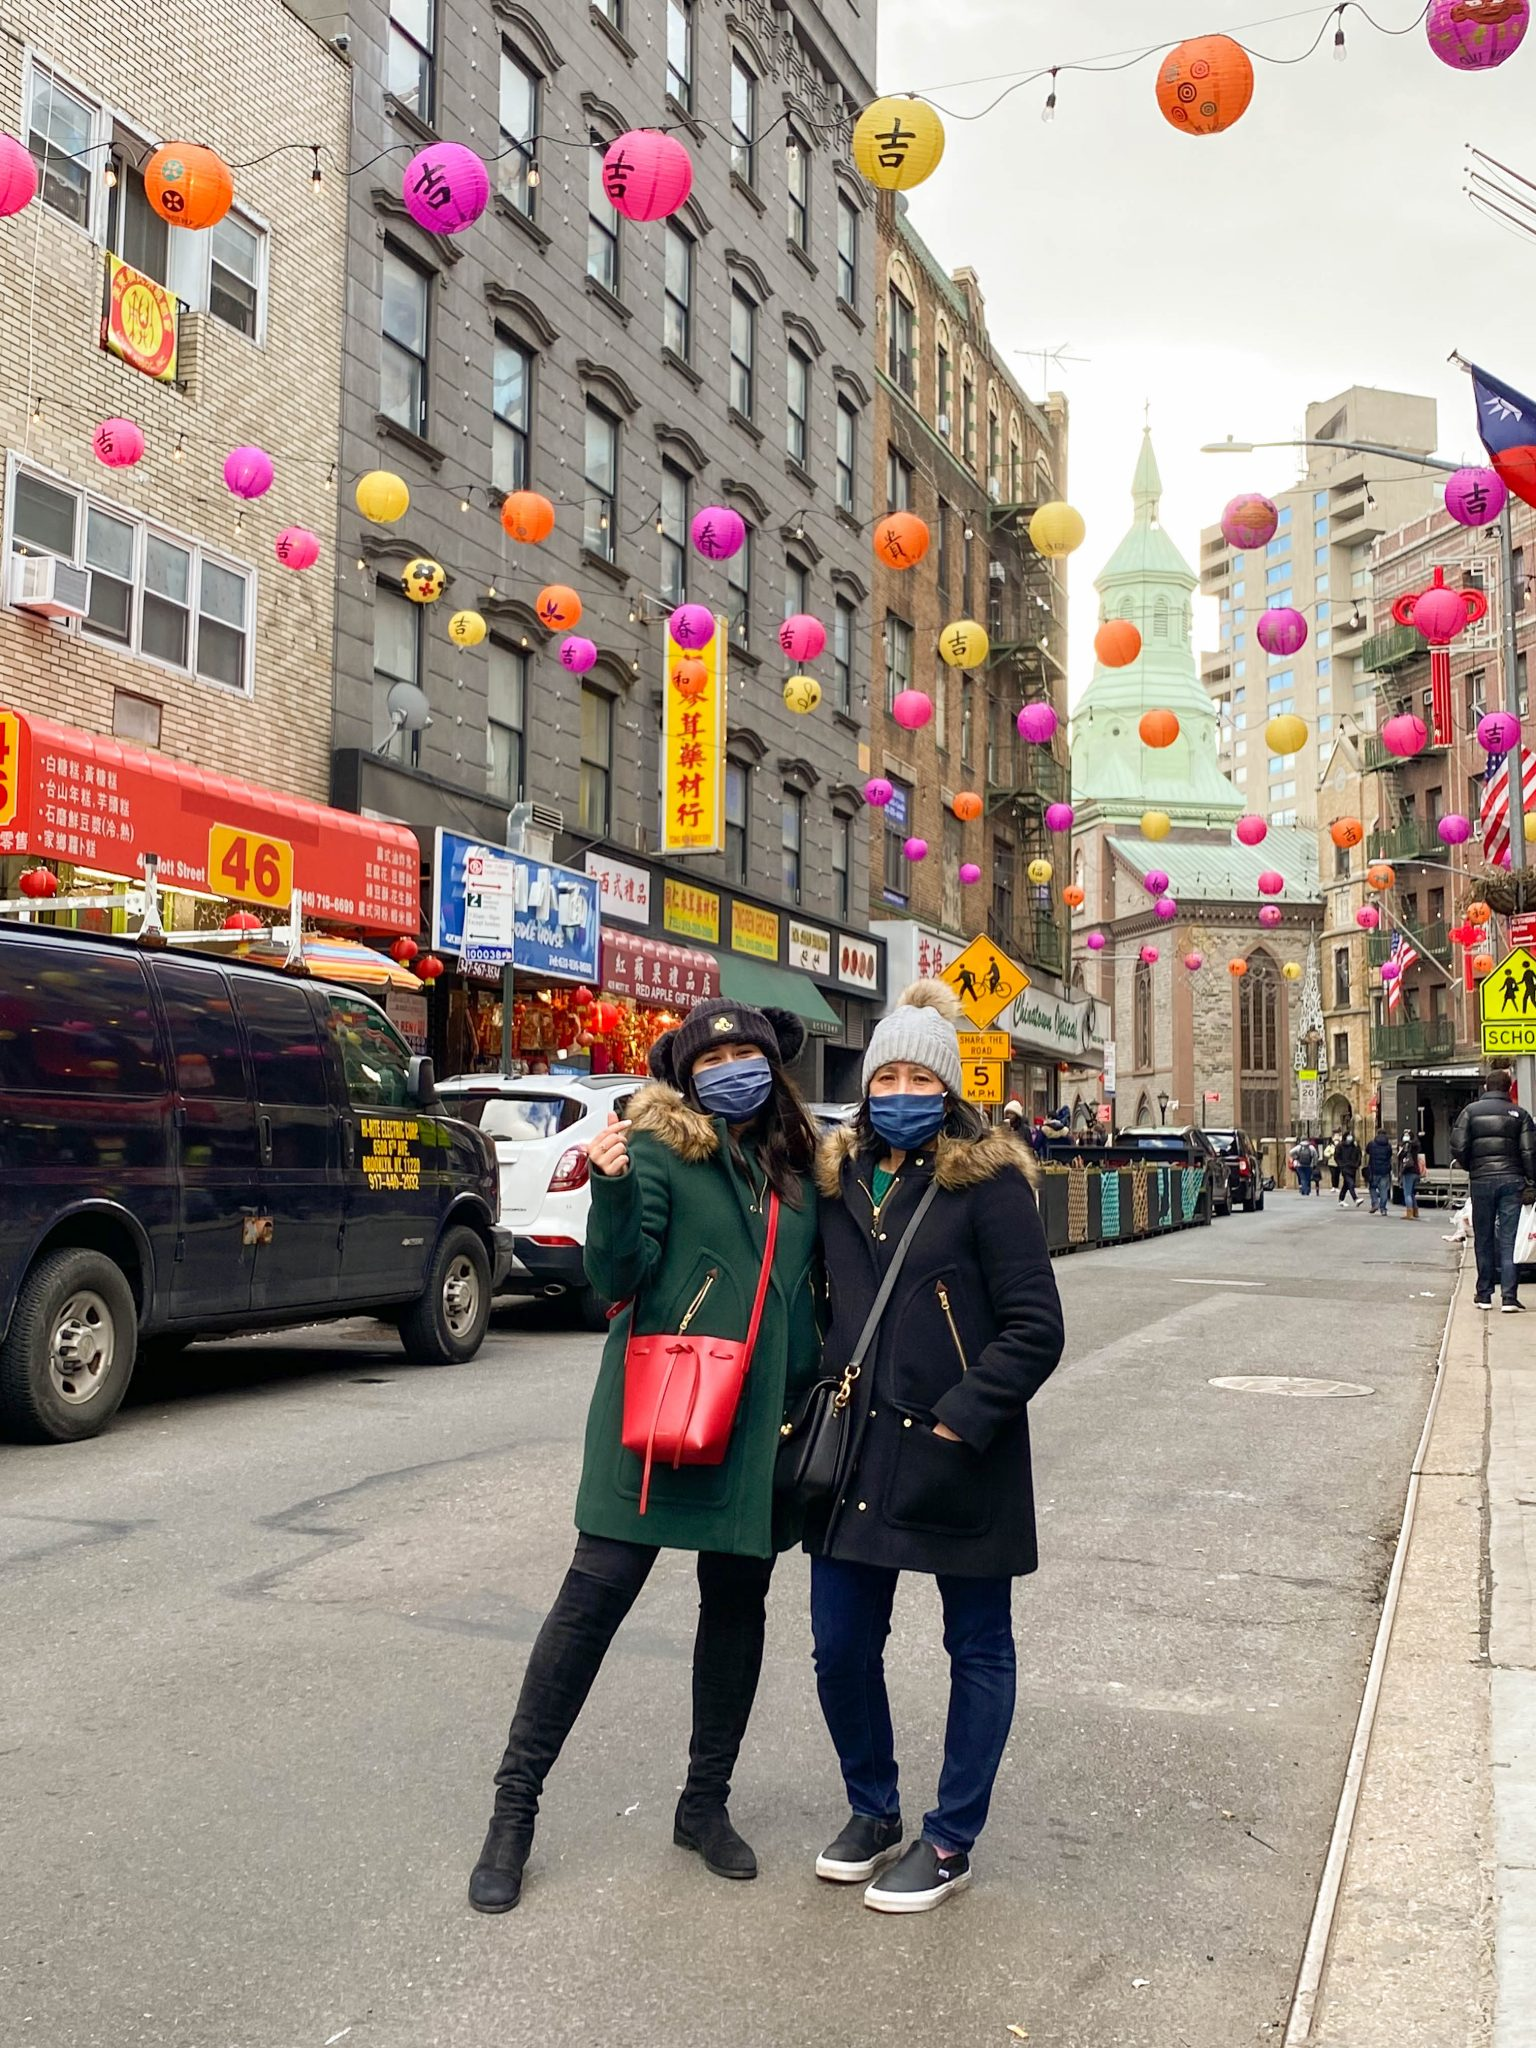 4 Small Businesses to Support in Chinatown NYC by Basically A Mess (image of two women in Chinatown New York City)